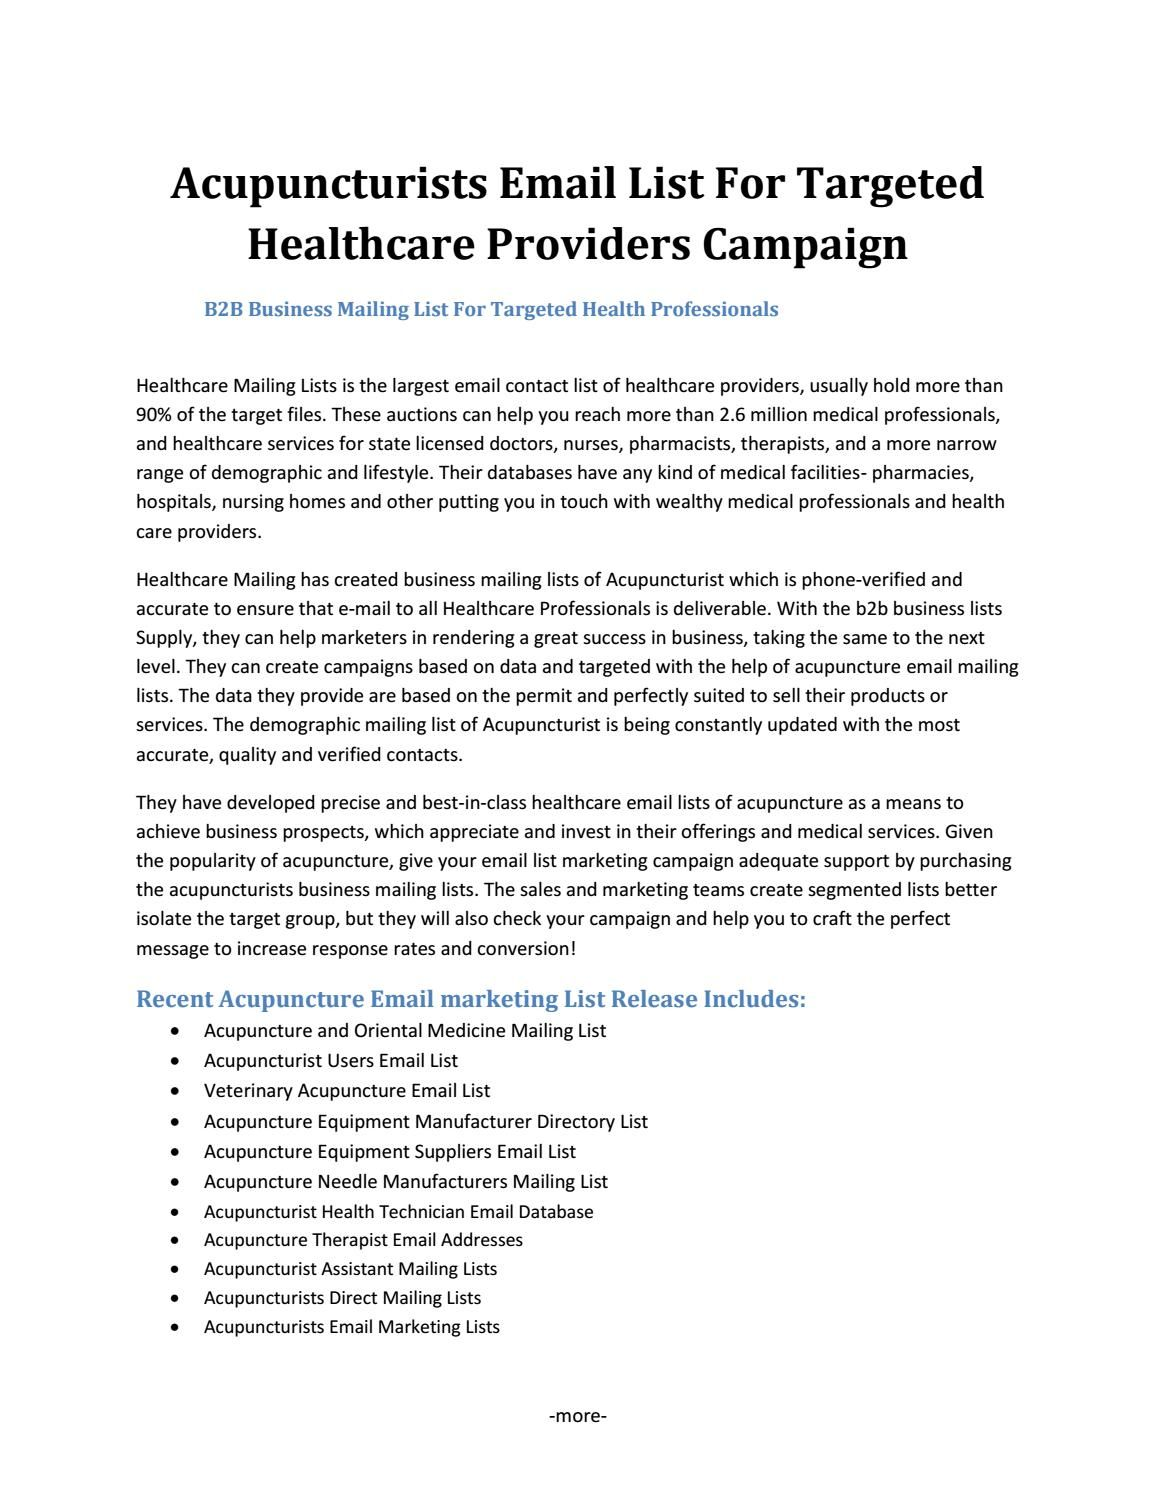 Acupuncturists Email List For Targeted Healthcare